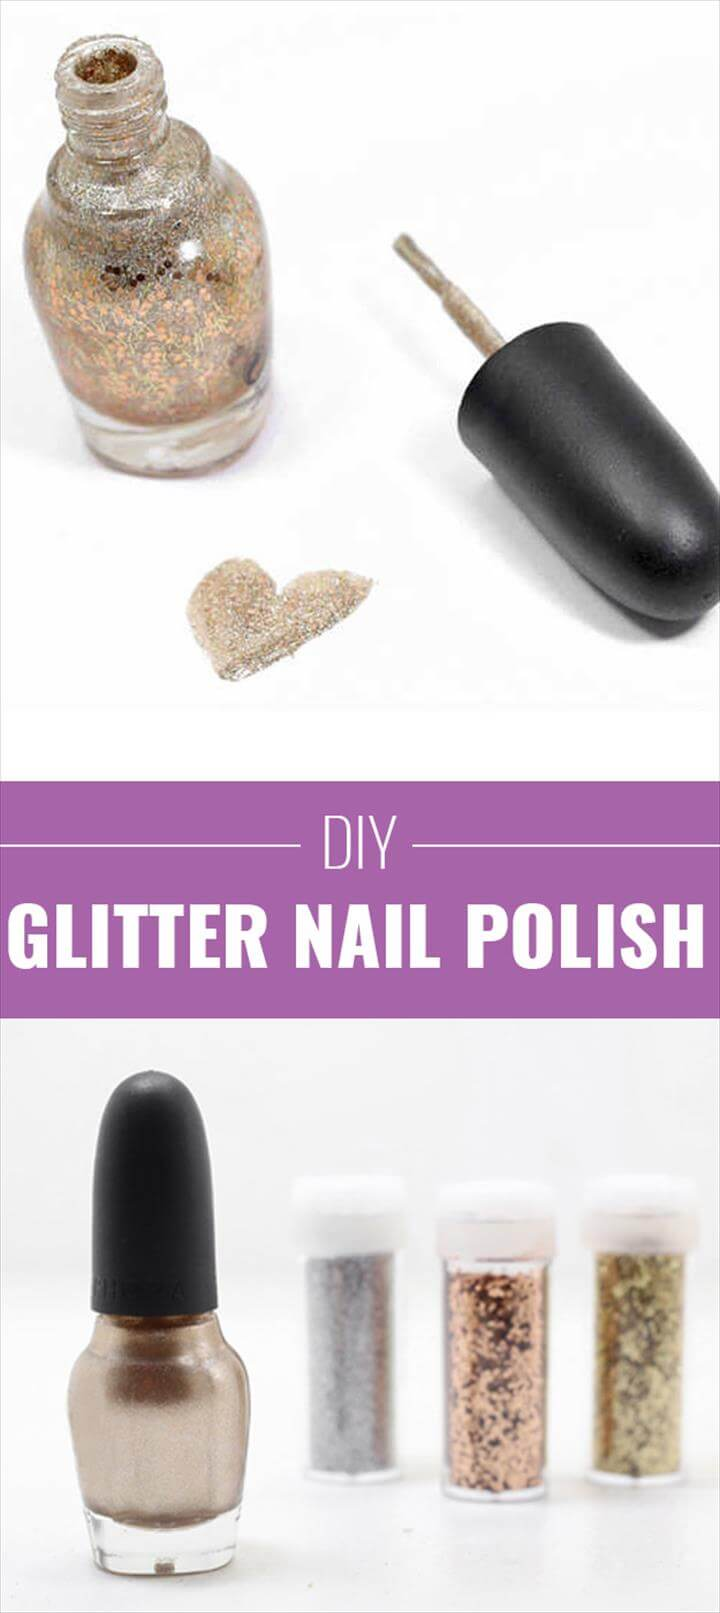 Cool DIY Crafts Made With Glitter - Sparkly, Creative Projects and Ideas for the Bedroom, Diy Nails, Nail Art Diy, Beauty Nails, Diy Beauty, Beauty Tricks, Beauty Secrets, Polish Nails, Gold Glitter Nail Polish, Sparkly Nails, Diy Nail Polish, Glitter Nail Polish, Diy Nail Designs, Birthday Crafts, Love Nails, Pretty Nails, Crafty Projects, Girly Stuff, Kid Stuff, #glitter #glitternails #beauty #diy #diynaildesigns #diynails #nailart #nails #nailpolish #nailstagram #naildesigns #nailartdesigns #fashion #fashiontrends #fashionable #trendy #trendsetter #affordable #affordablefashion #newyearseve #newyears #newyearsnails #colorstreet #colorstreetnails #beautynails #beautytips #beautyhacks #beautysecrets #manicure #pedicure #manicureideas, Imbre Nails Snow Nails Gray Nails Black Ombre Nails Cute Gel Nails Shiny Nails Nails 2016 Nice Nails Nail Polishes